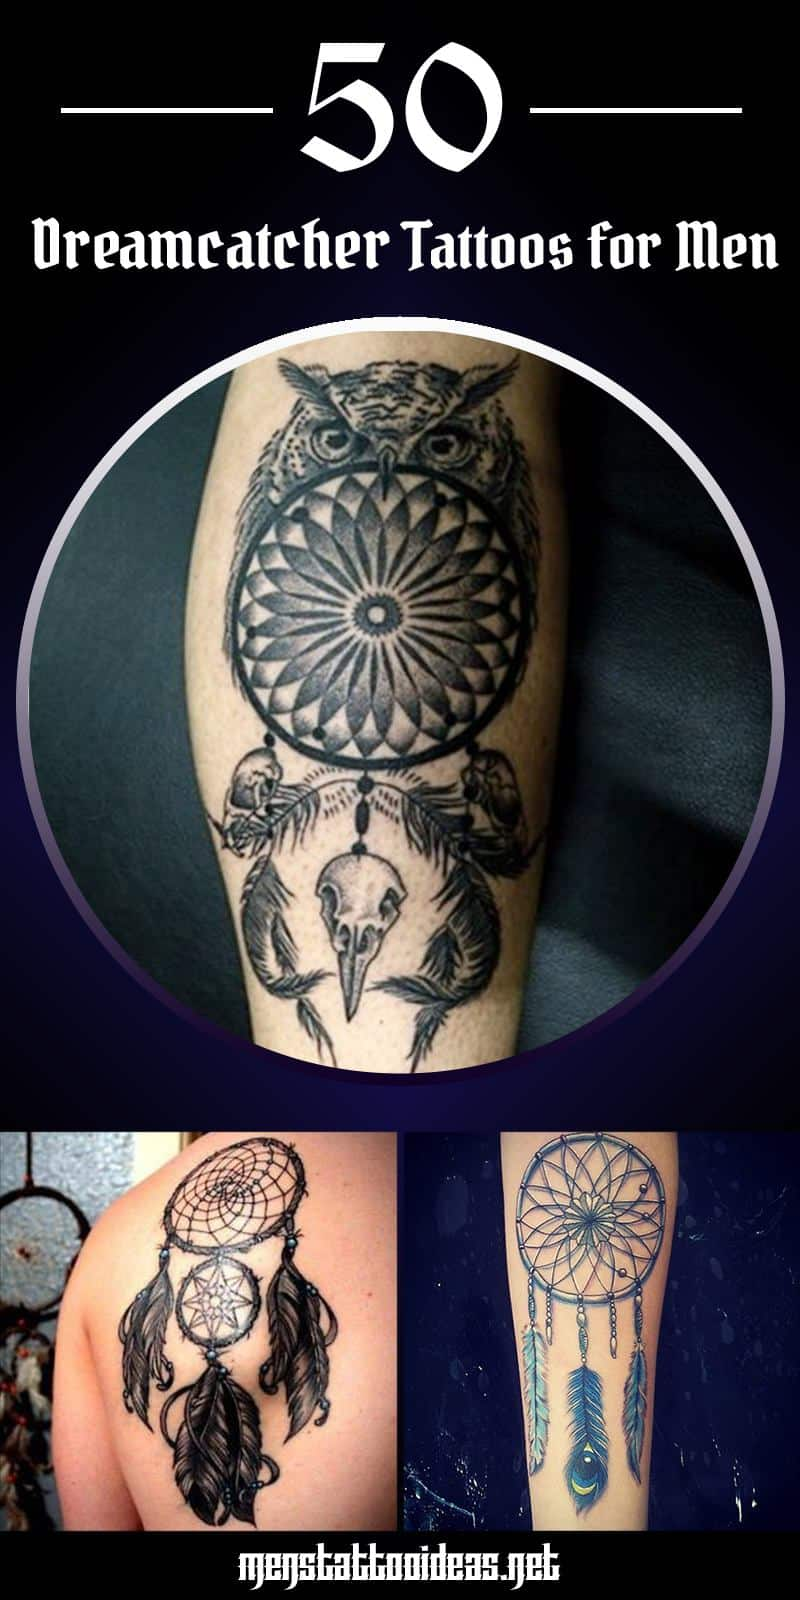 Dreamcatcher tattoo ideas